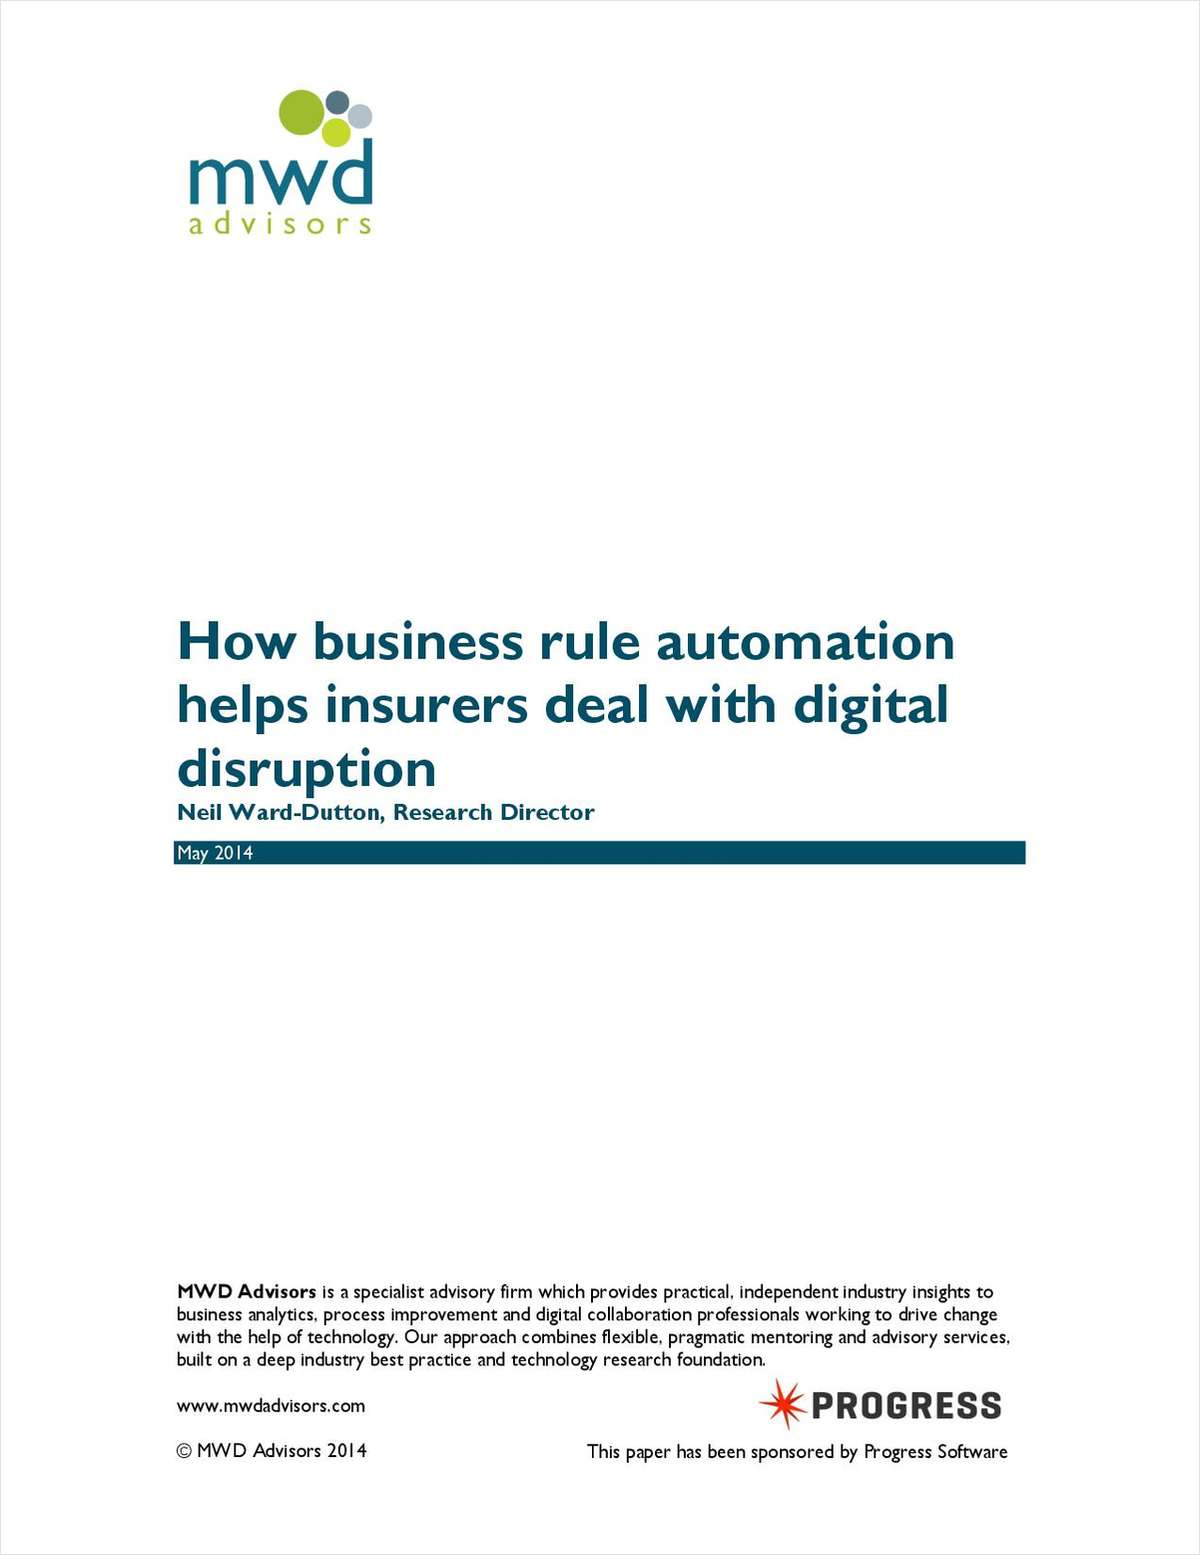 How Business Rule Automation Helps Insurers Deal with Digital Disruption